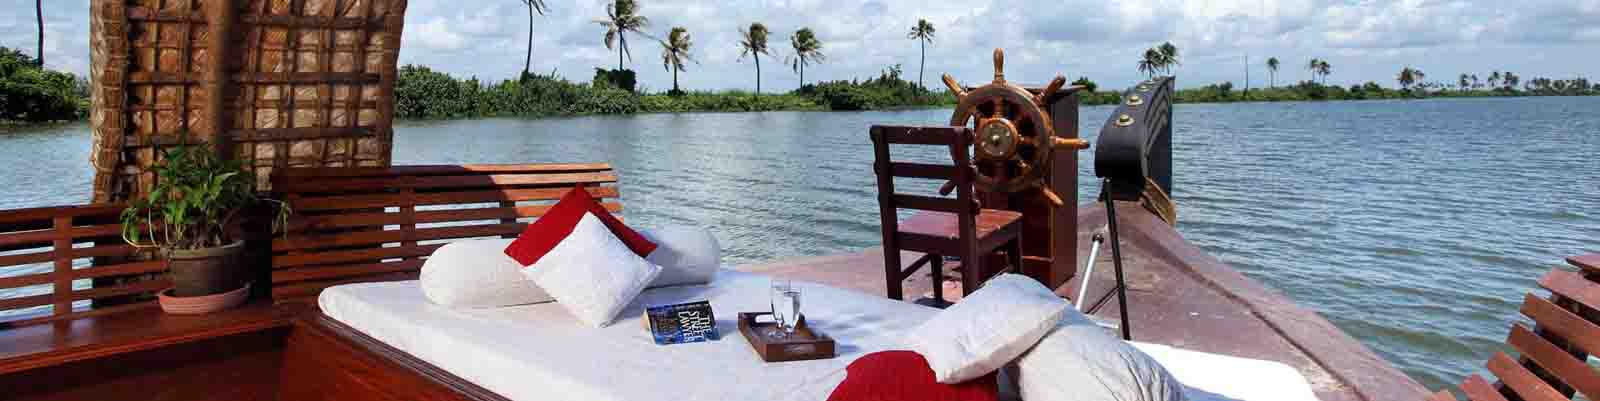 kerala tour and honeymoon packages from Trichy